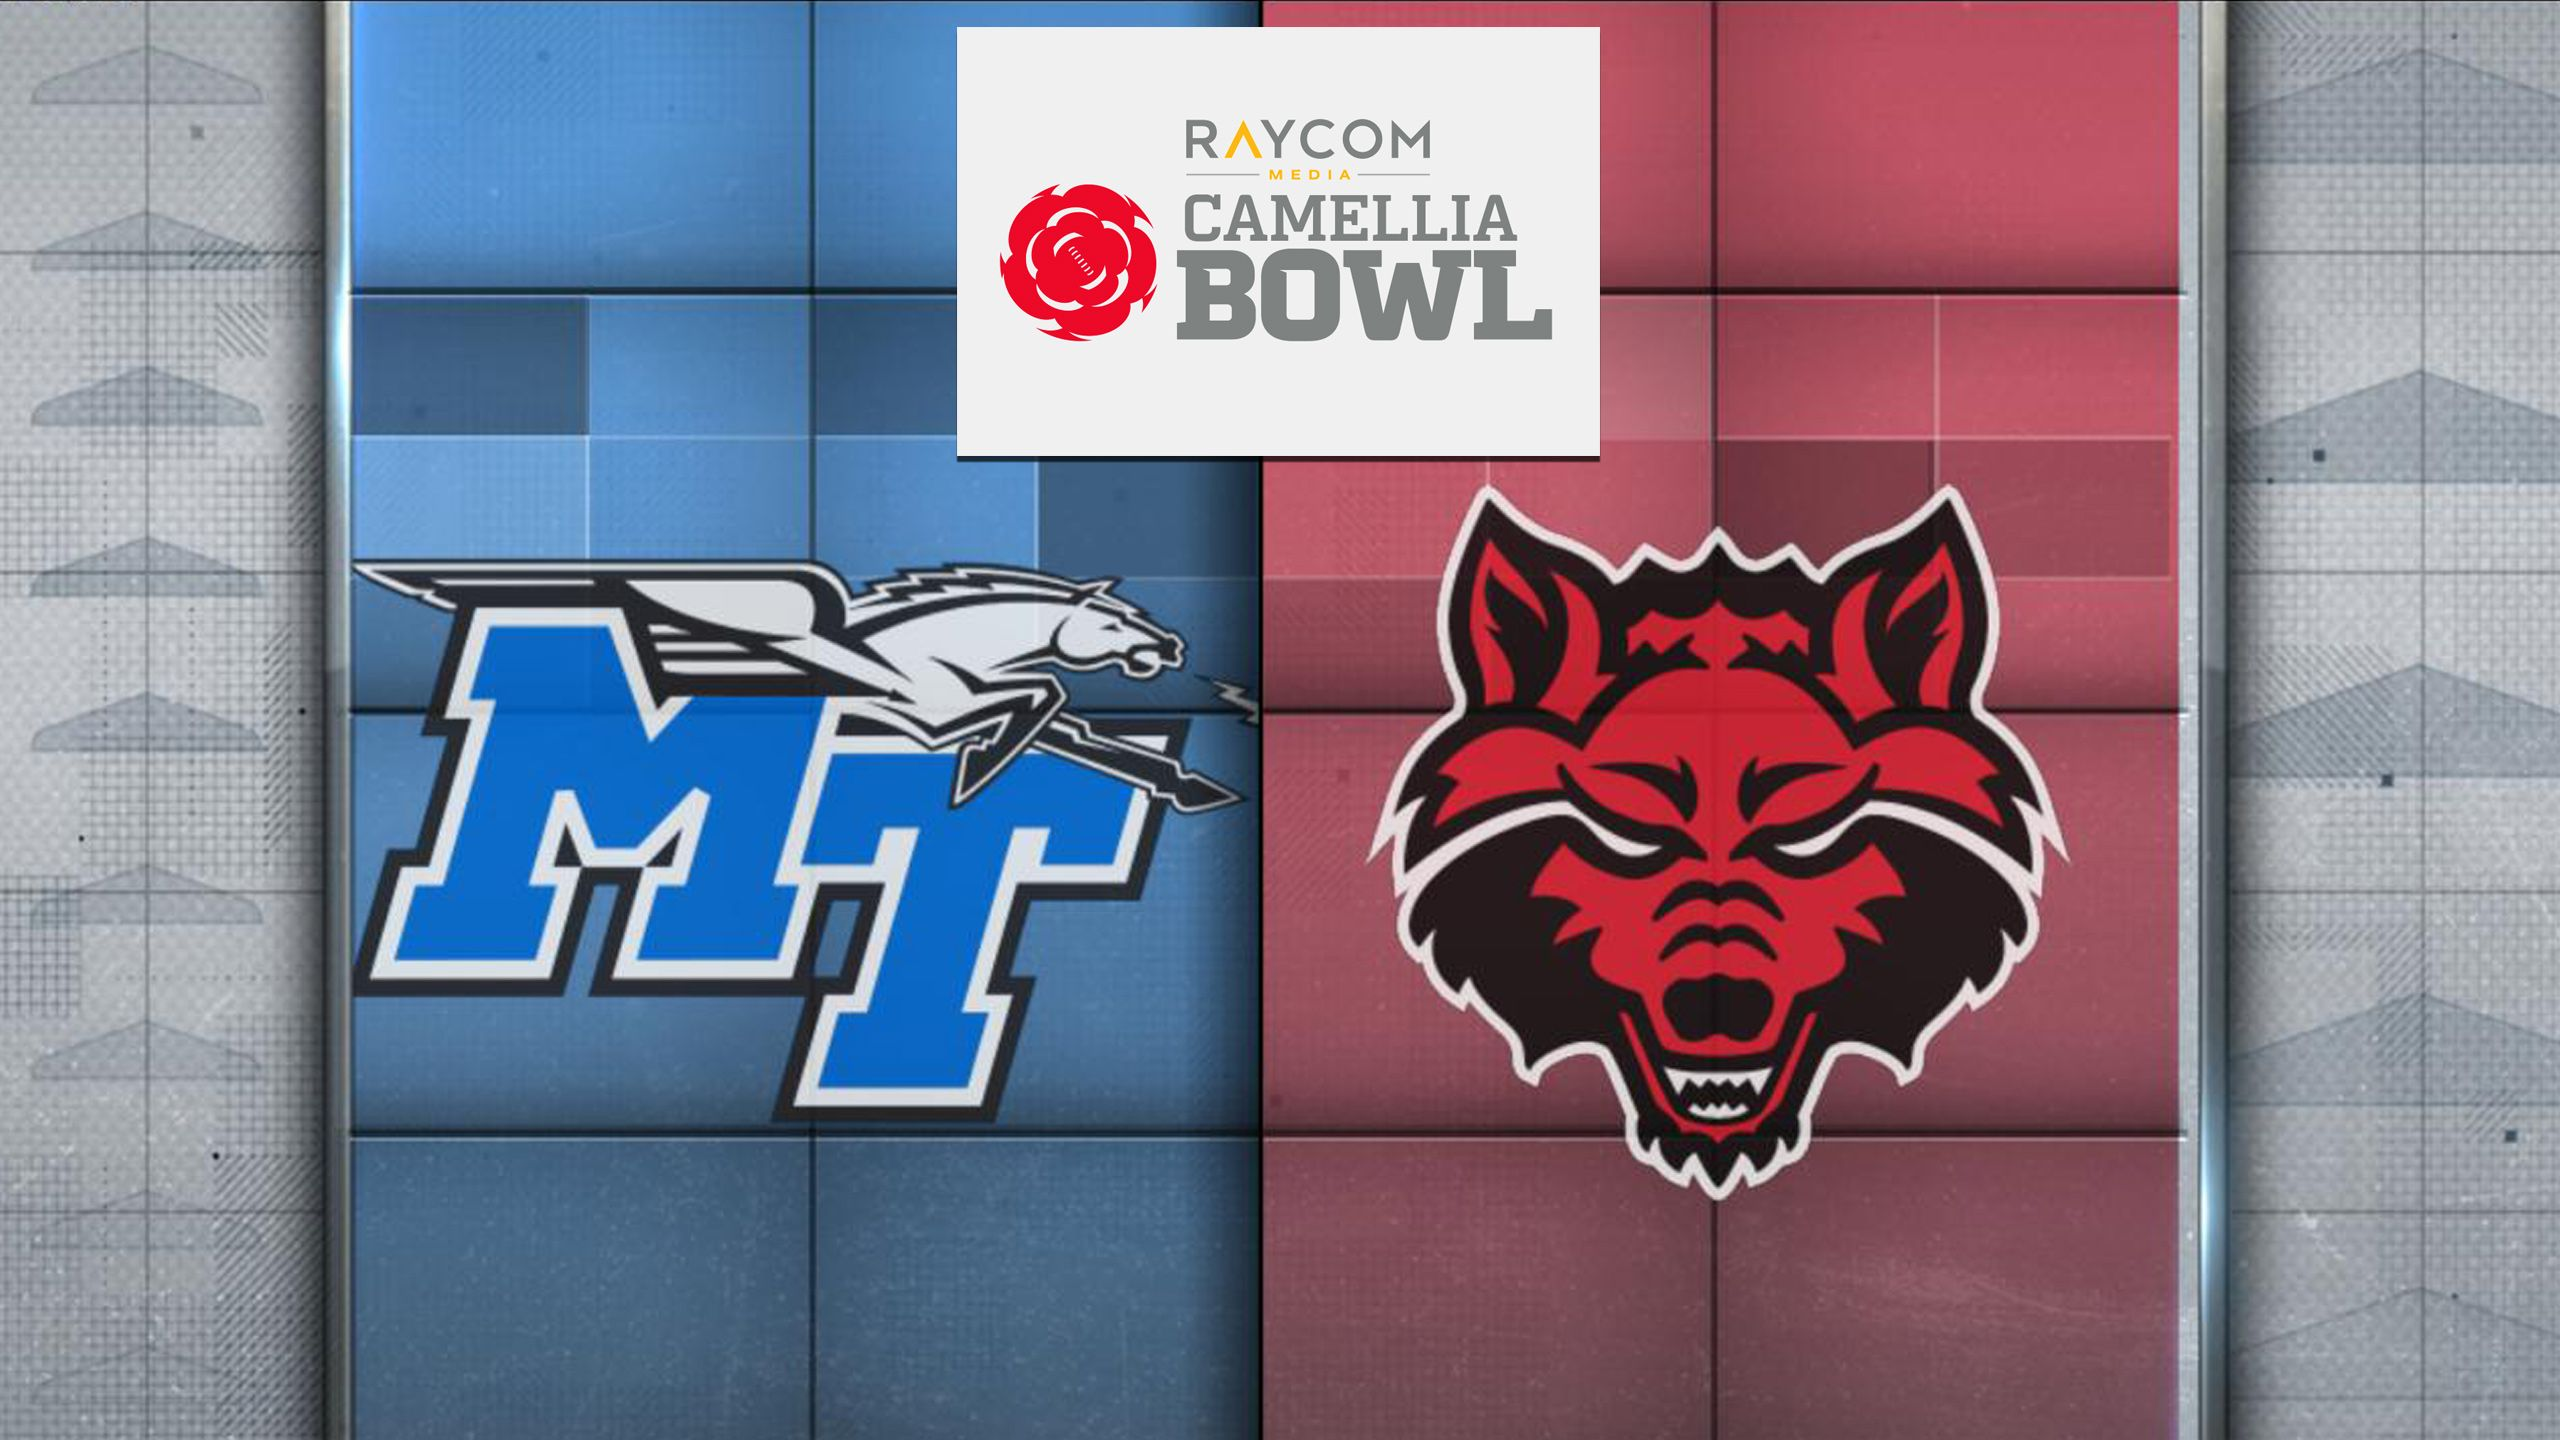 Middle Tennessee vs. Arkansas State (Raycom Media Camellia Bowl)